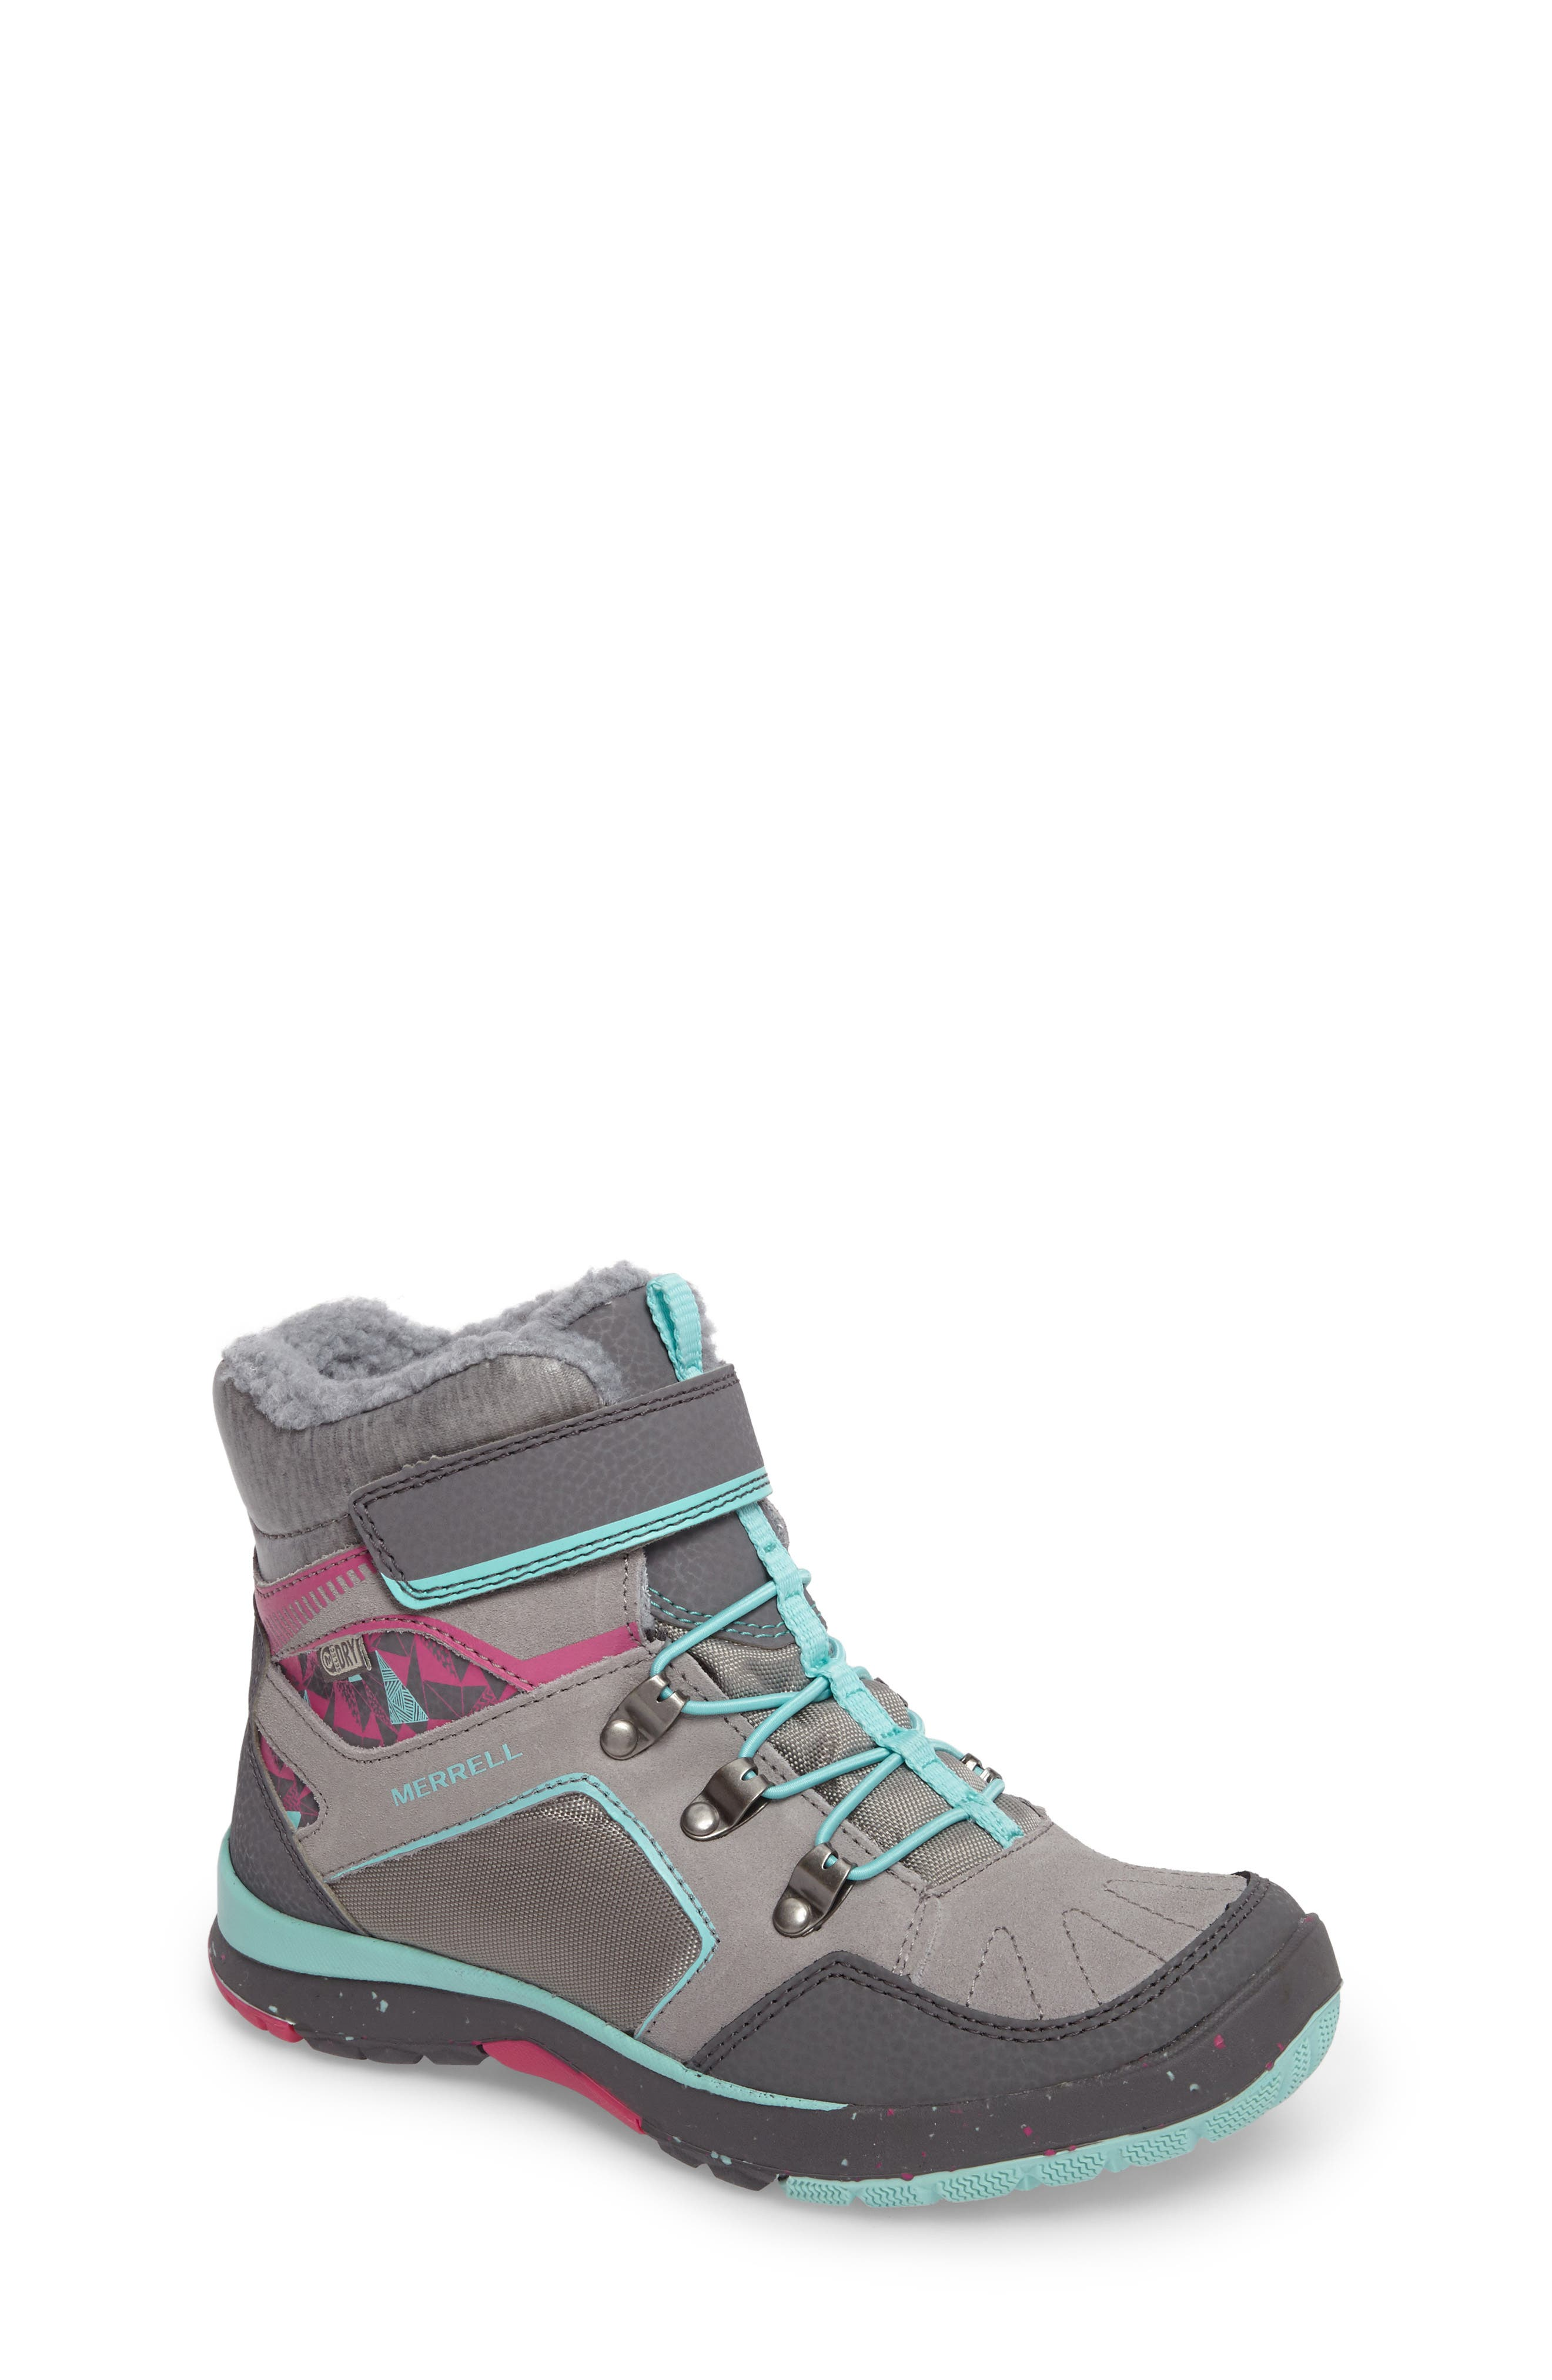 Moab FST Polar Mid Waterproof Insulated Sneaker Boot,                             Main thumbnail 1, color,